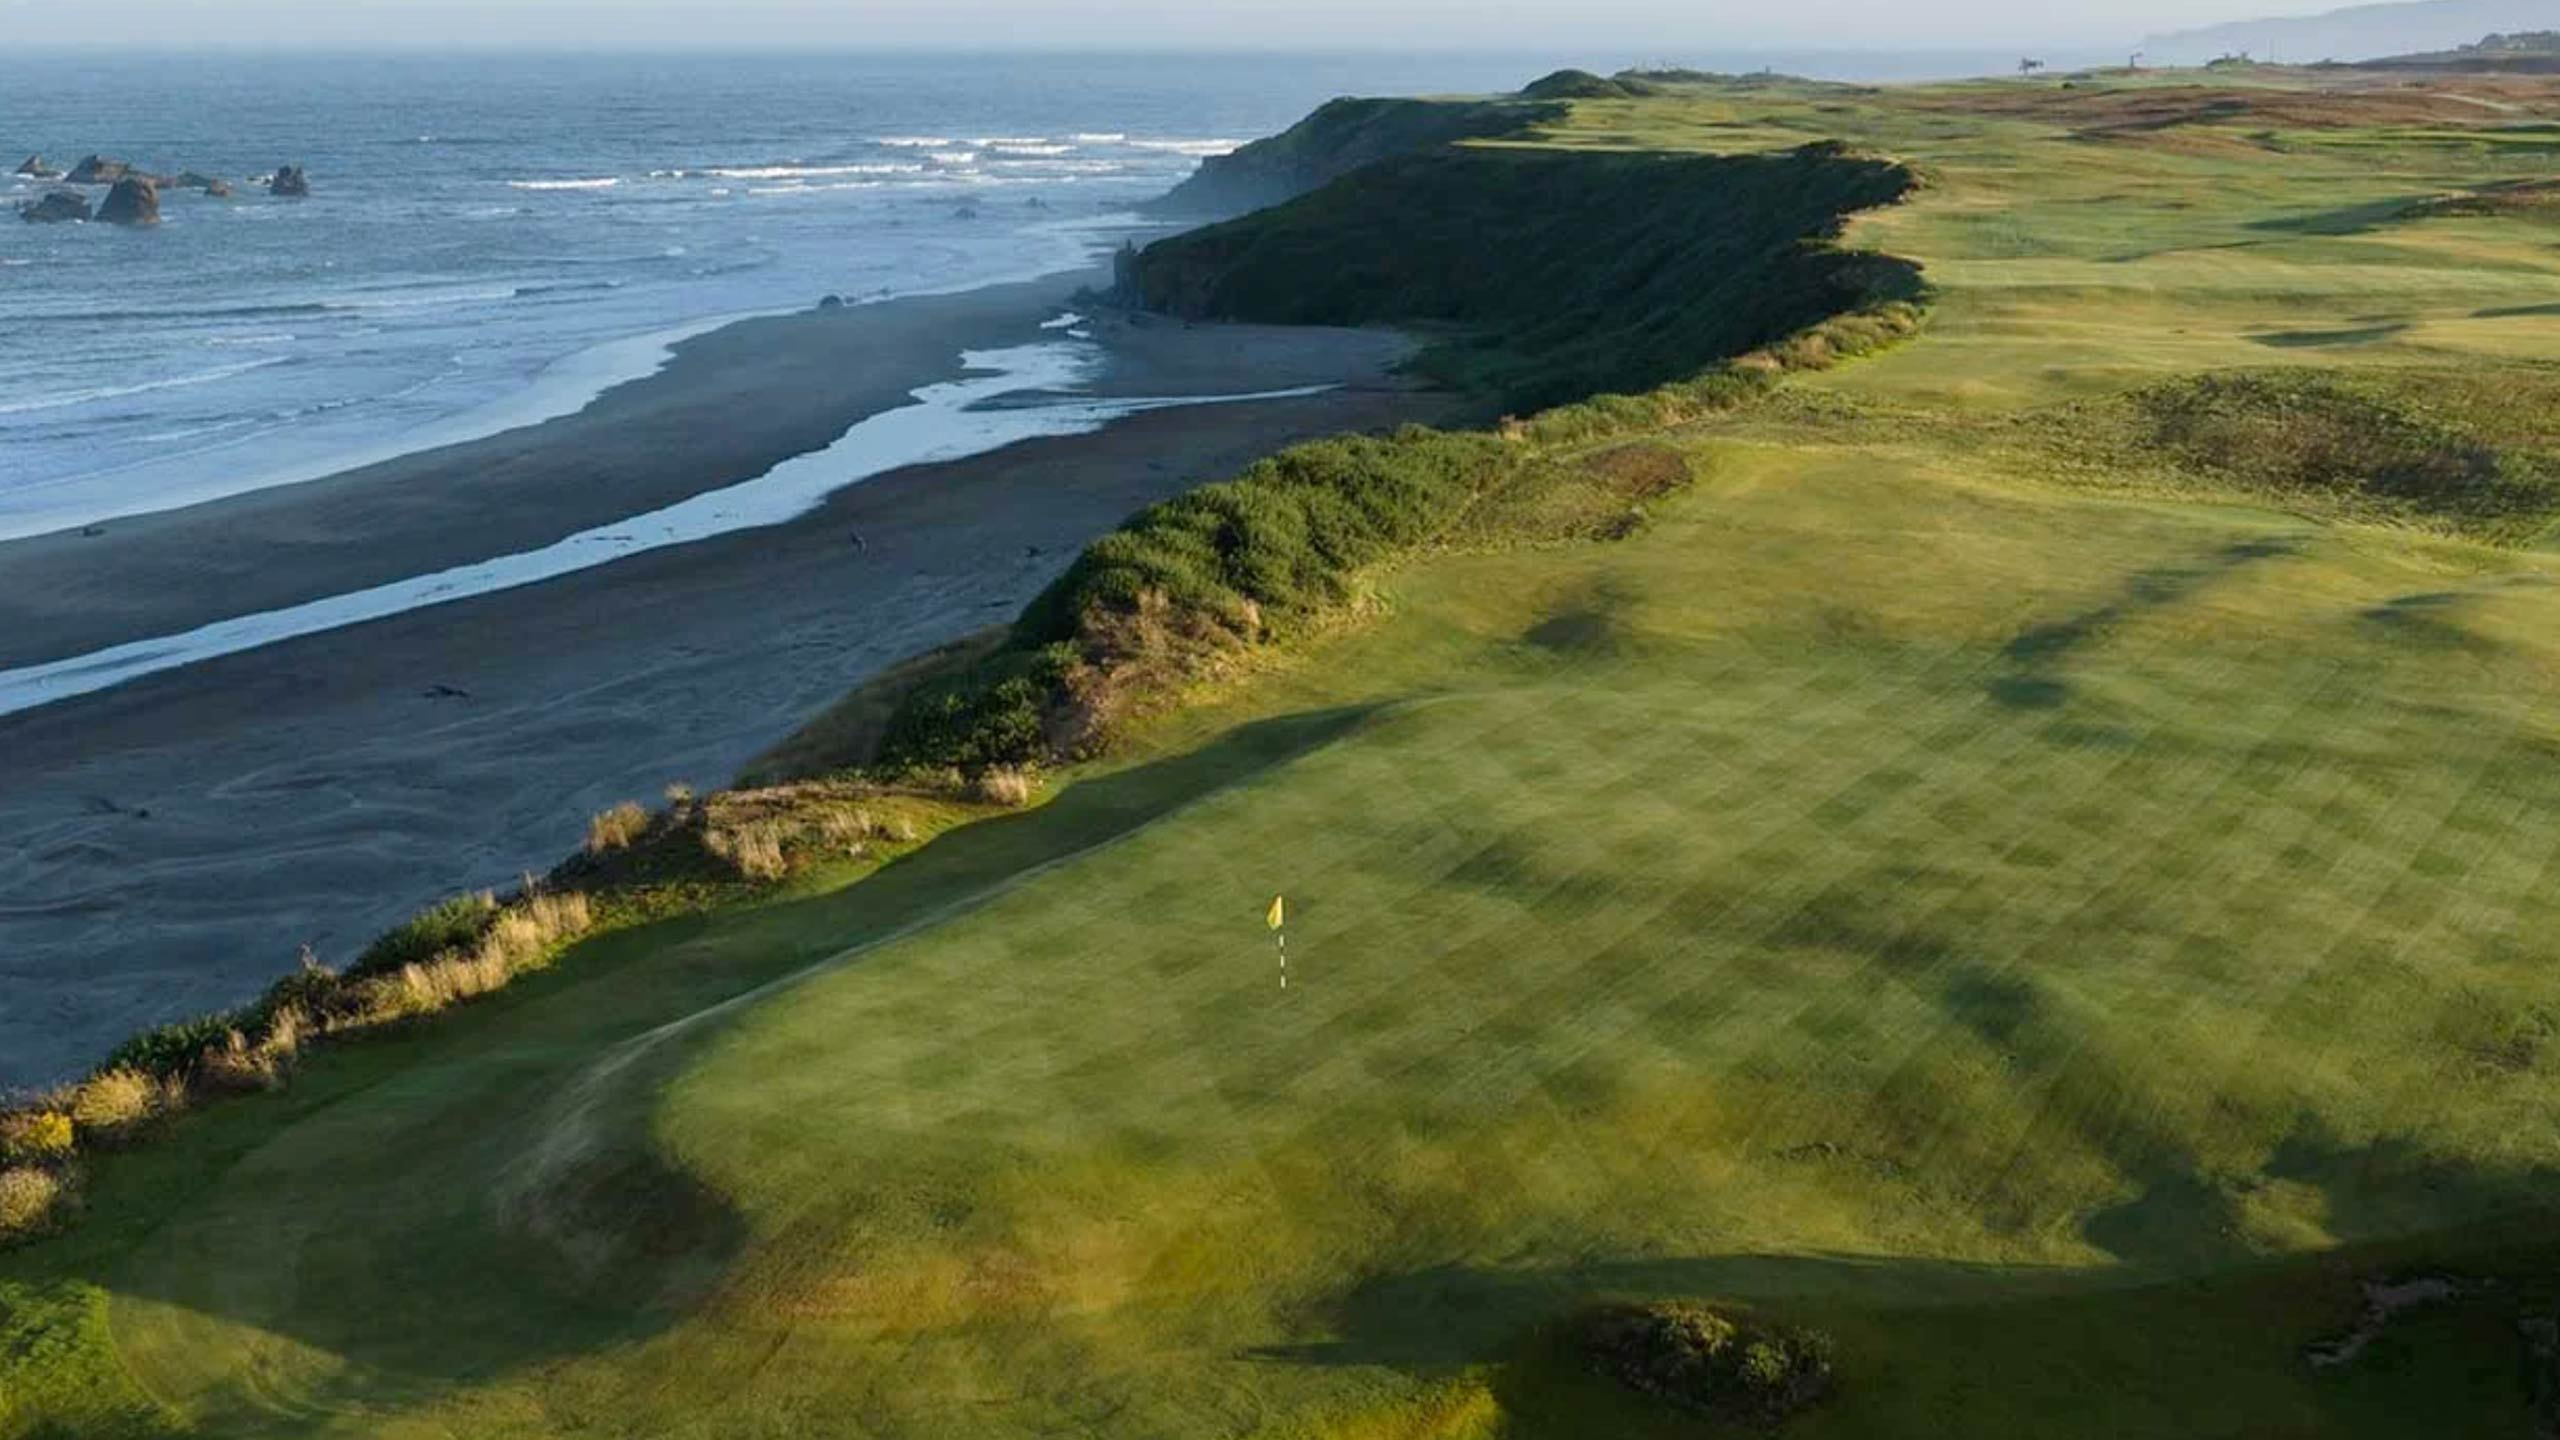 A view of the Sheep Ranch at Bandon Dunes.